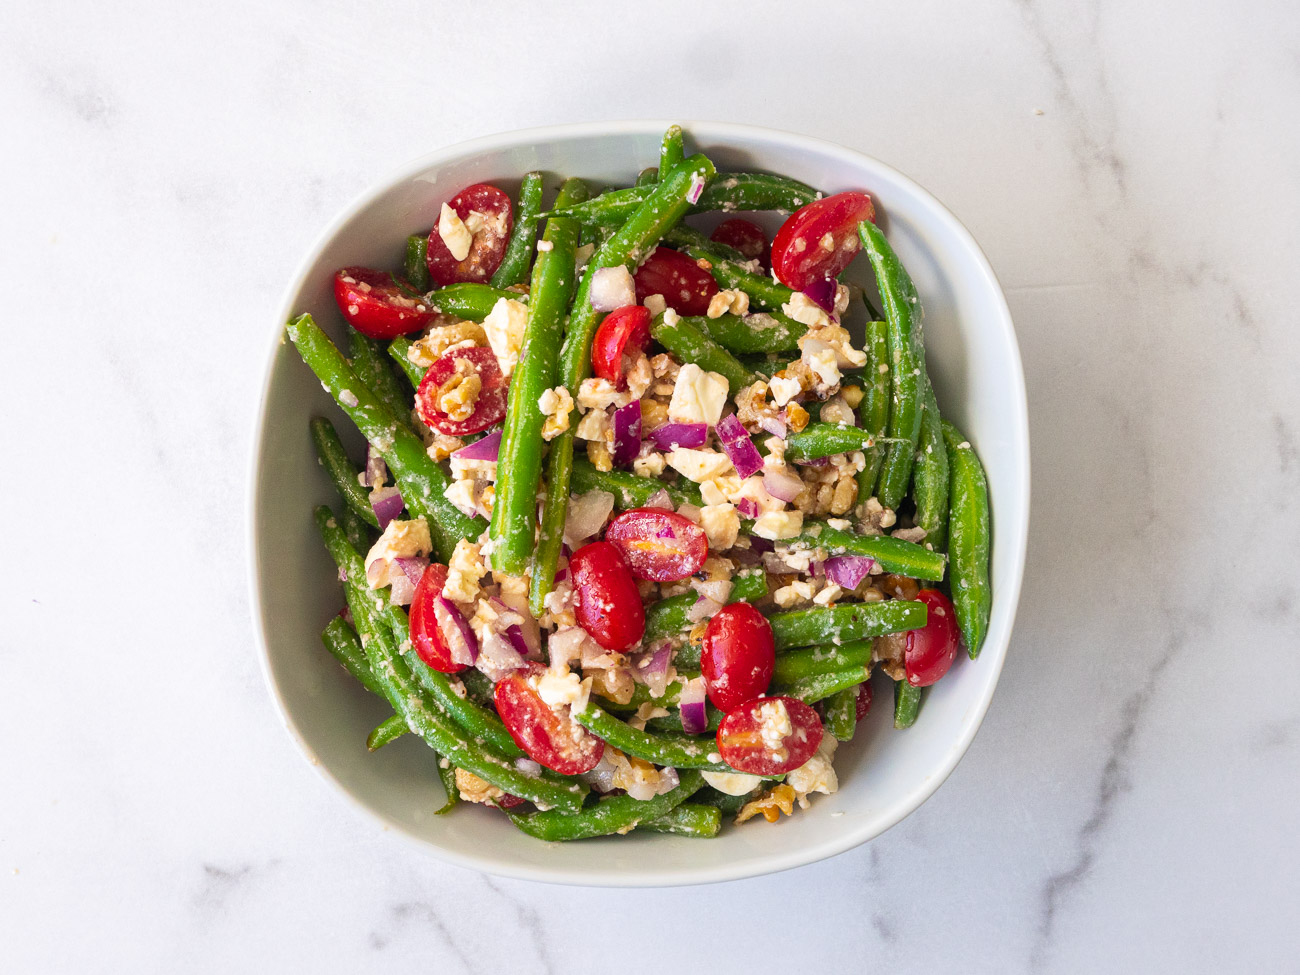 Top down photo of green beans, feta cheese, tomatoes, and walnuts in a bowl